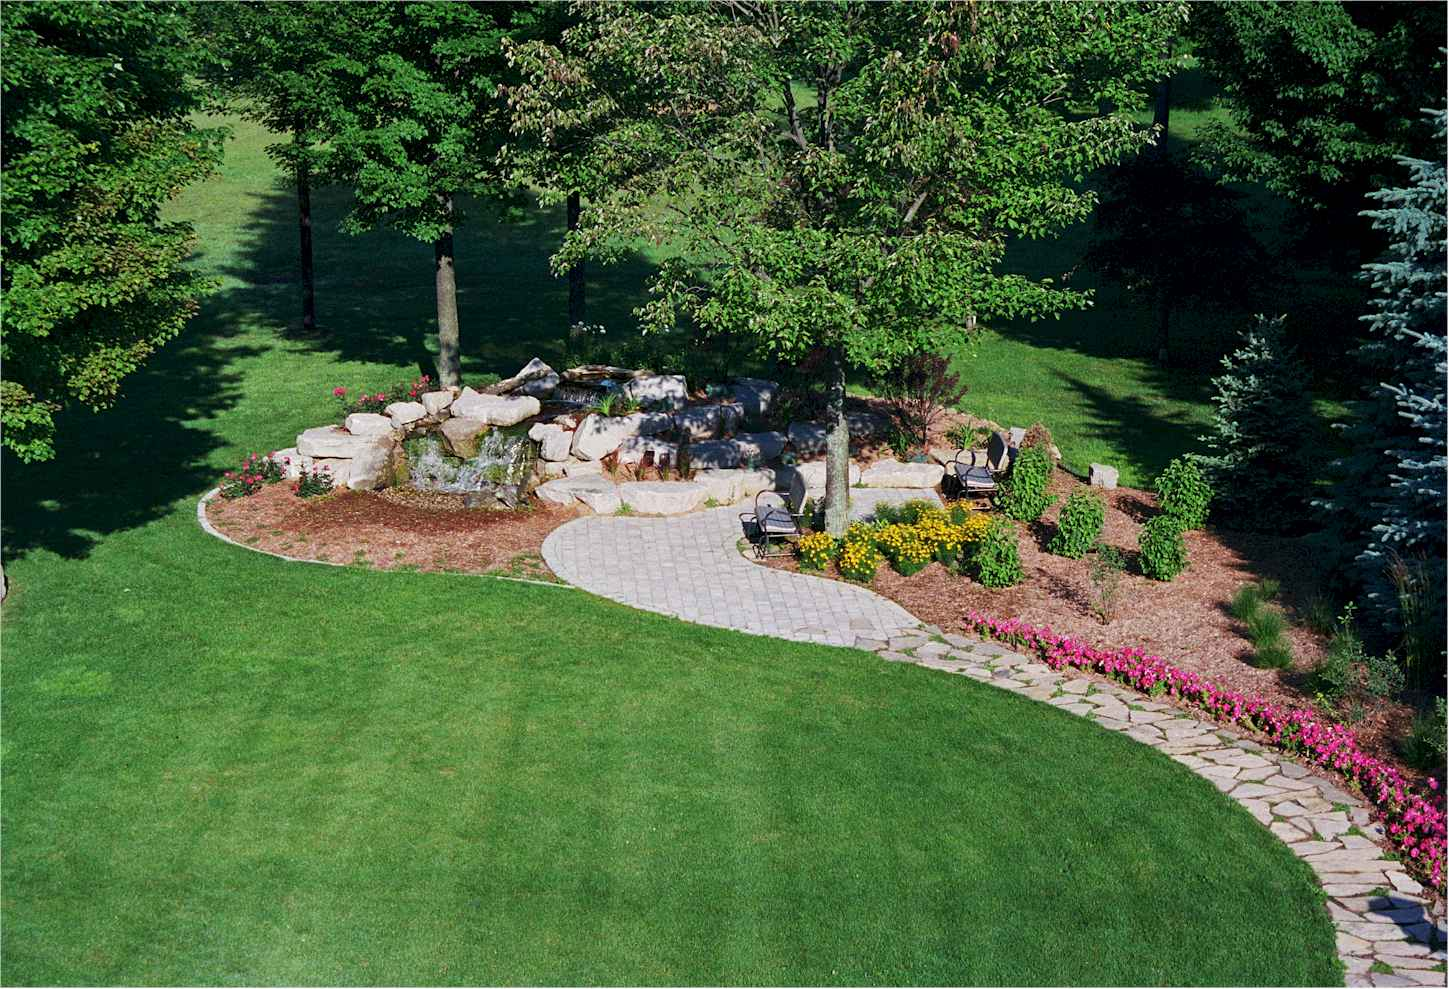 Landscaping Ideas : Landscaping ideas to wow the neighbors